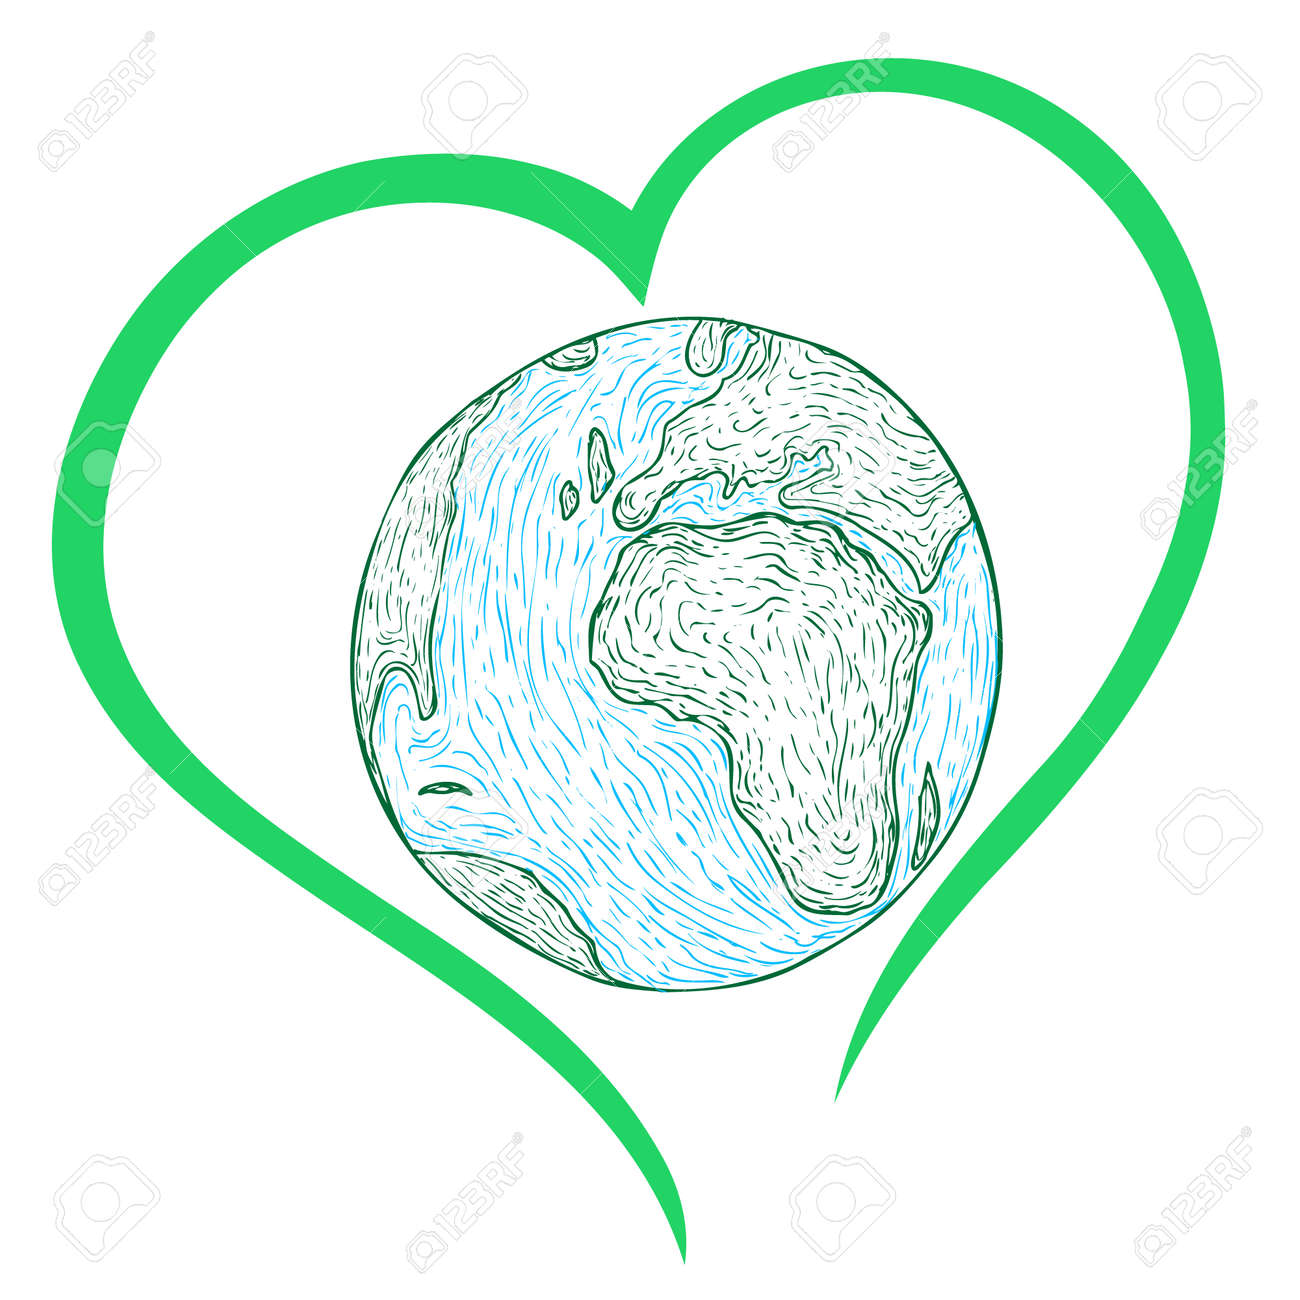 hand-drawn earth strokes with green heart around - 165925780